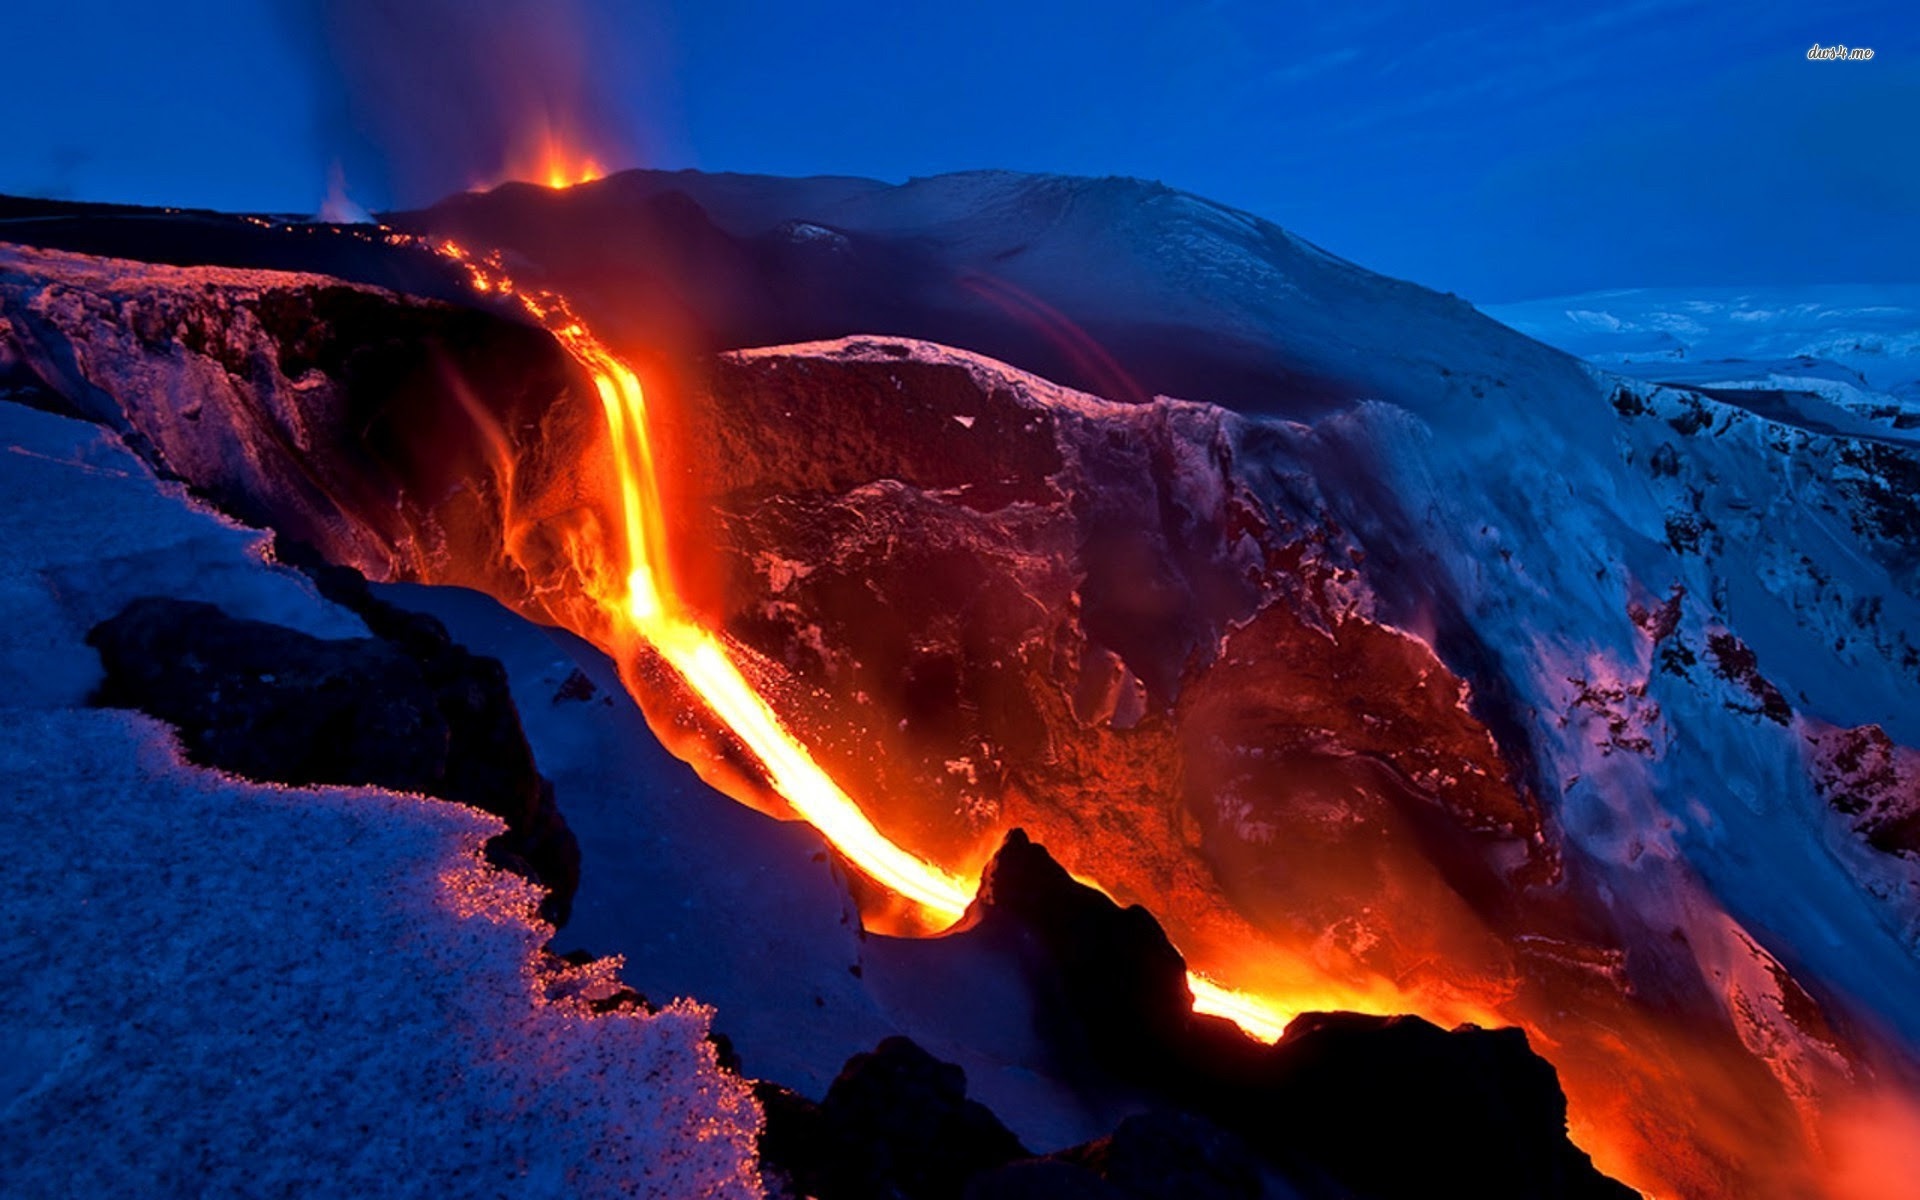 Volcano Wallpapers HD Backgrounds, Images, Pics, Photos Free Download  Baltana